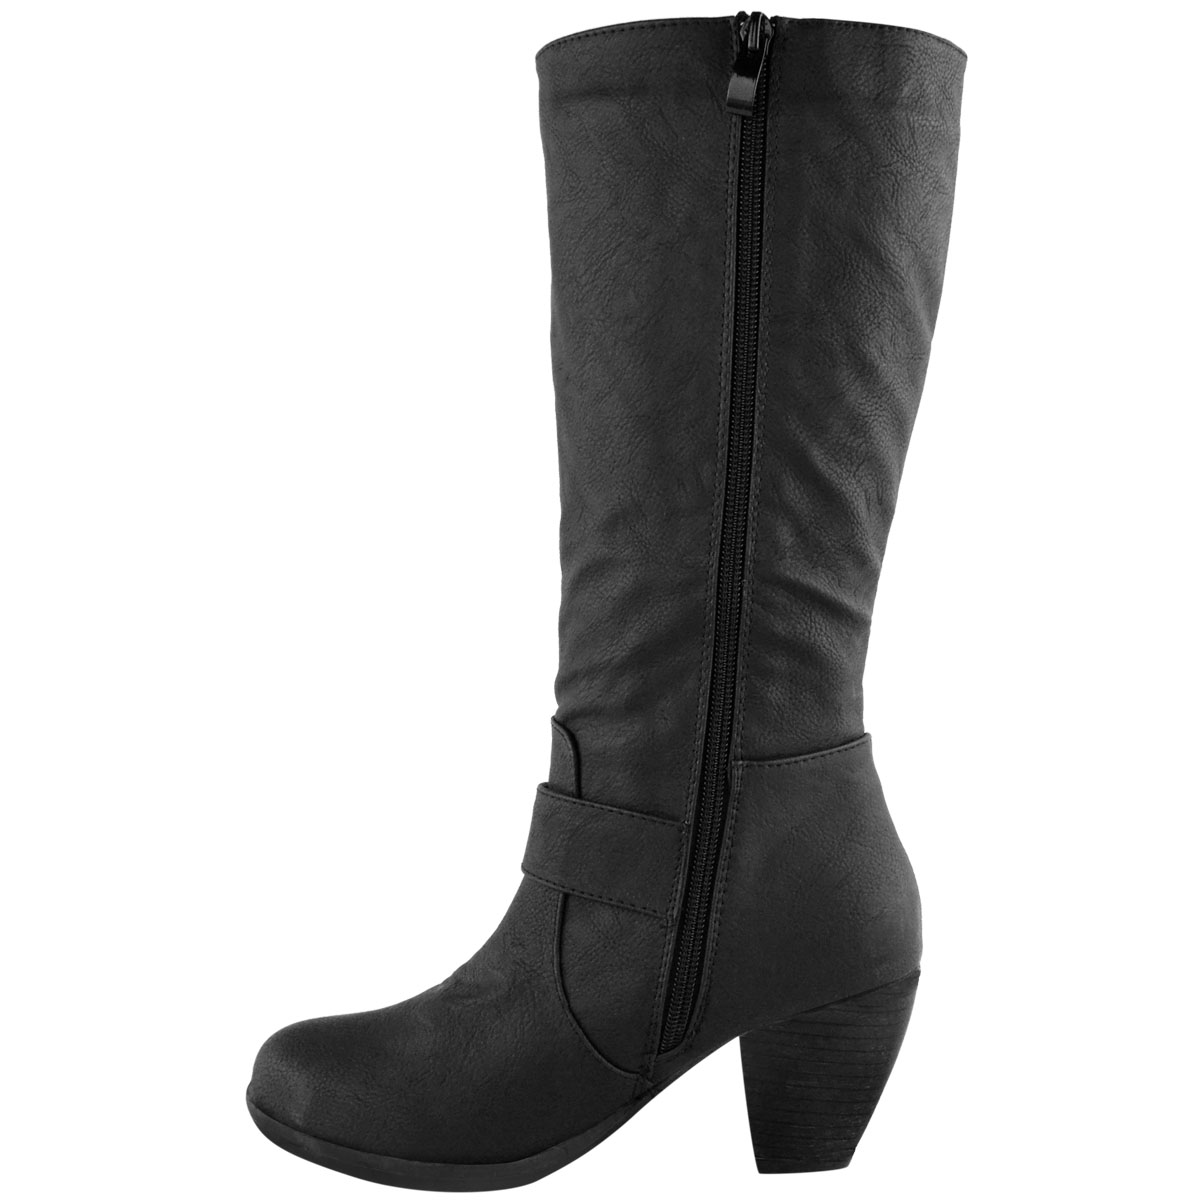 Womens-Ladies-Knee-Calf-High-Boots-Block-Heels-Stretchy-Thigh-Shoes-Grip-Size thumbnail 14